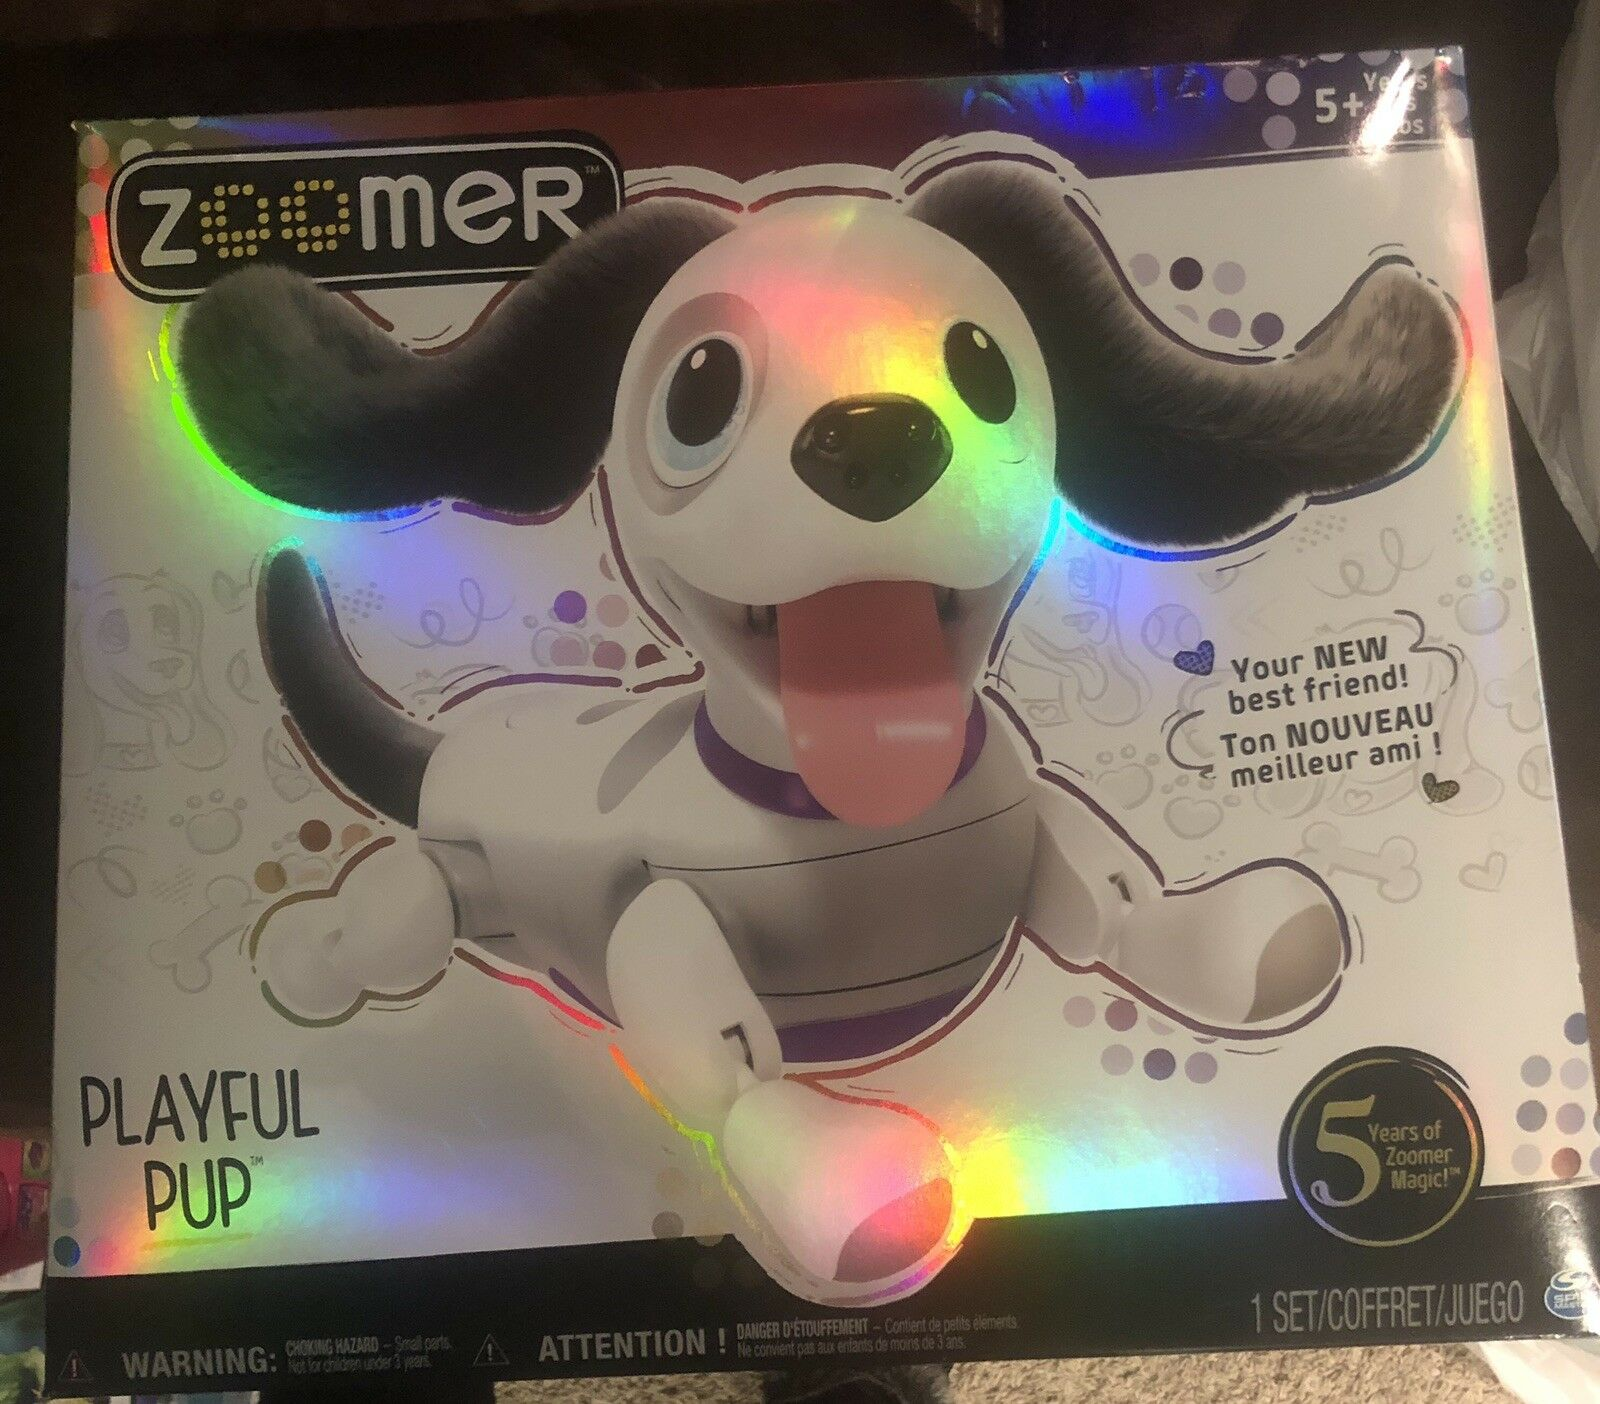 NEWZoomer Playful Pup Realistic interactive Robotic Dog Electronic Toy